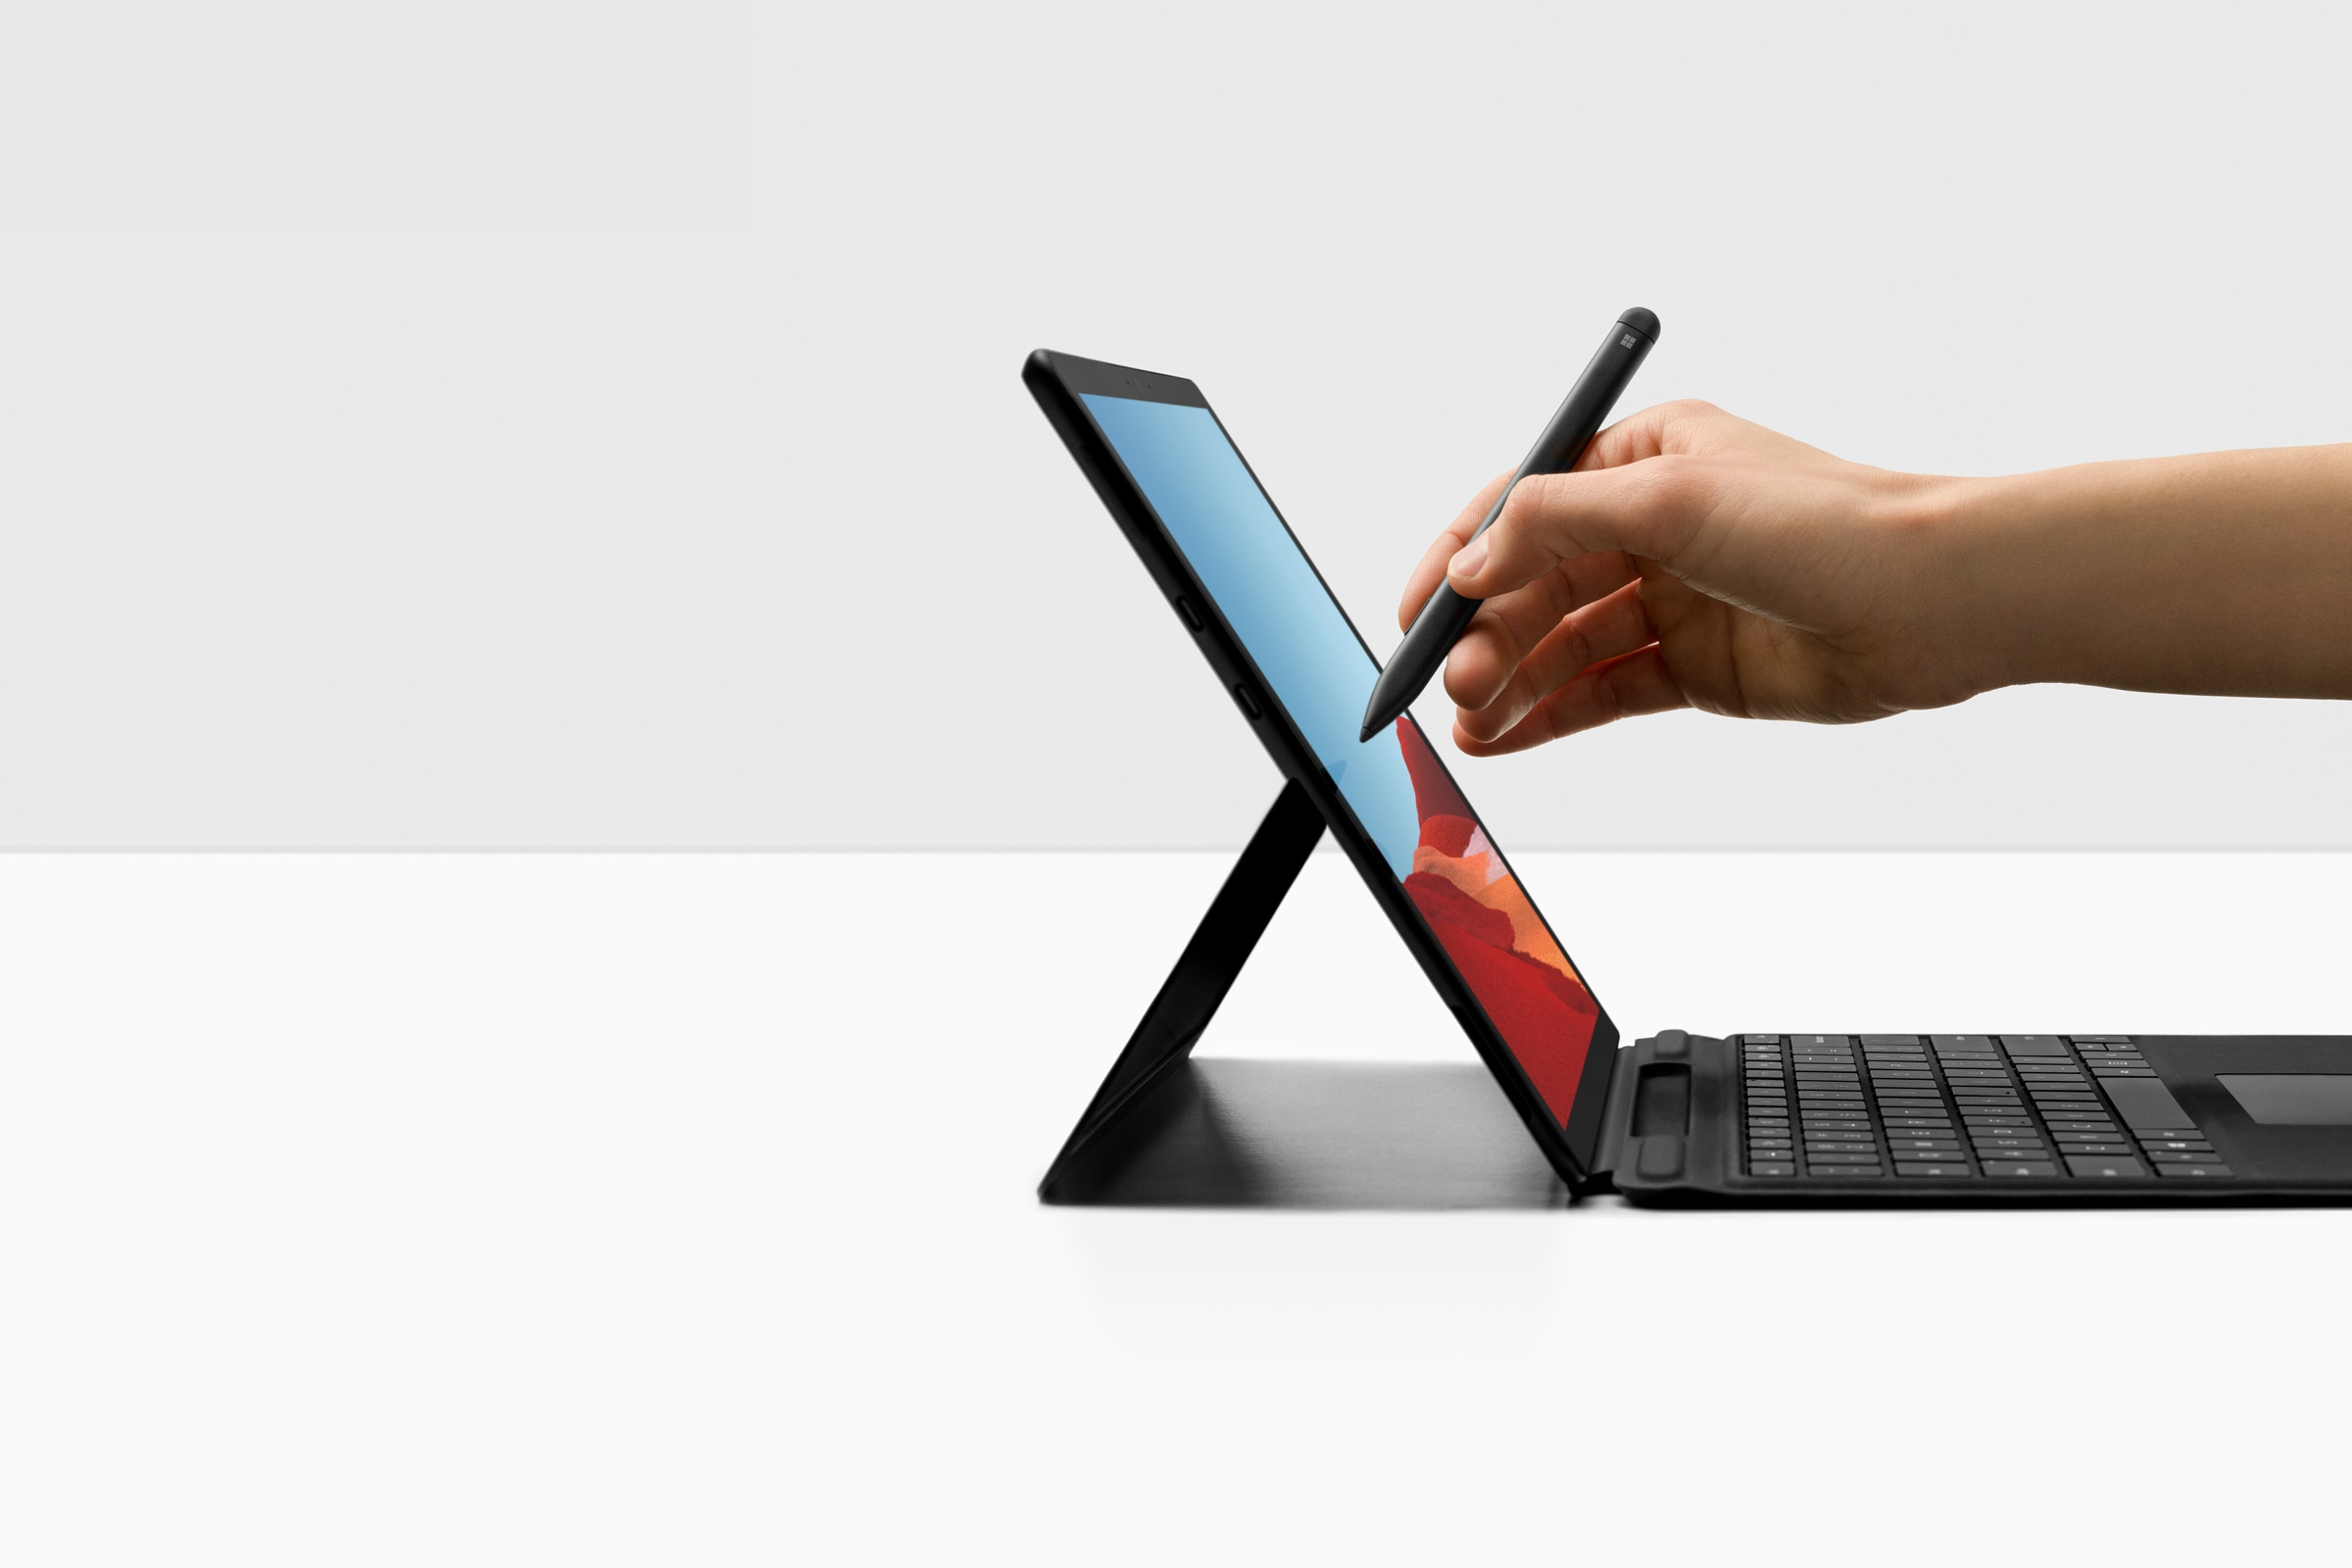 Surface Pro X with Surface Pro X Signature Keyboard and Slim Pen